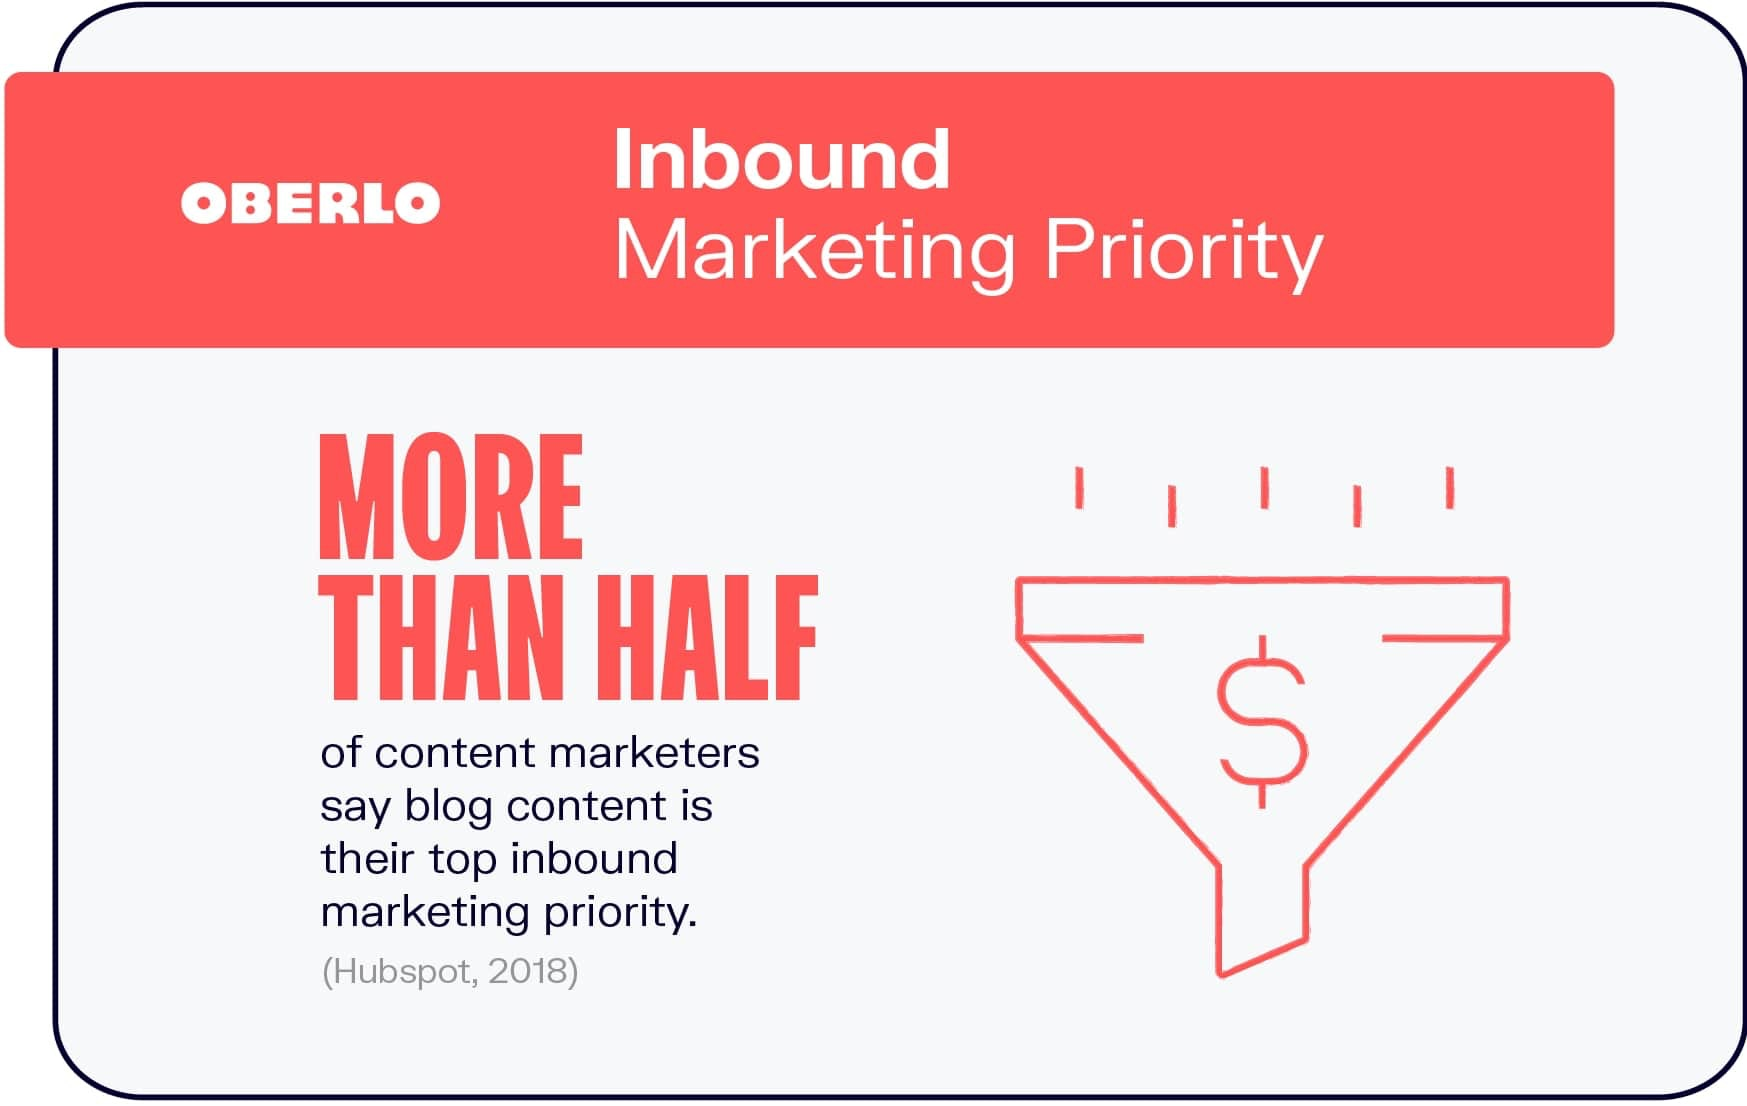 Blogging as Inbound Marketing Priority